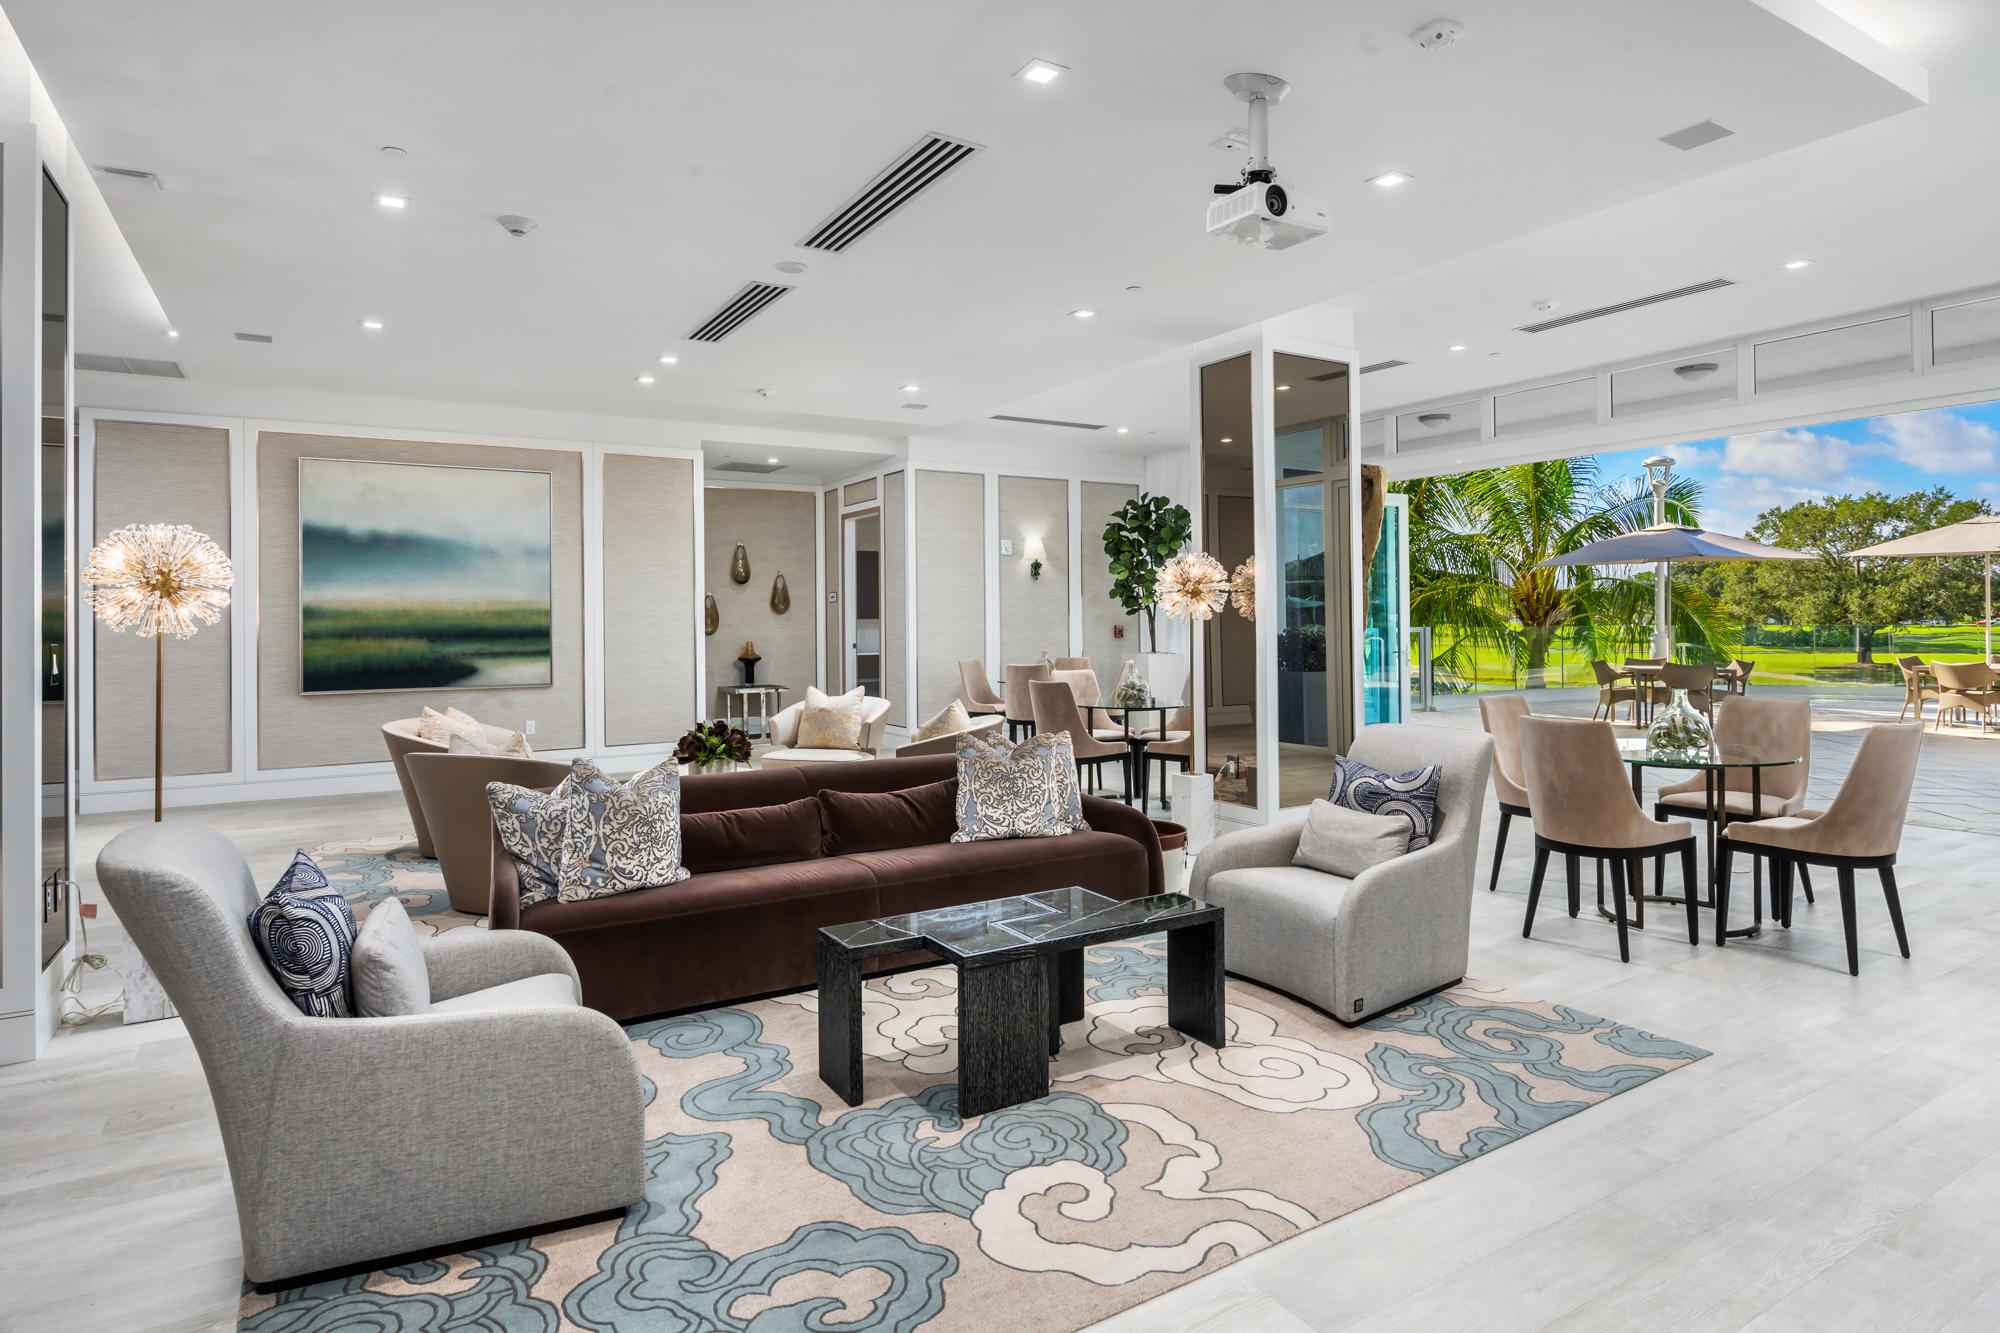 20155 Boca West Drive - 3/3 in AKOYA AT BOCA WEST COUNTRY CLUB CONDO